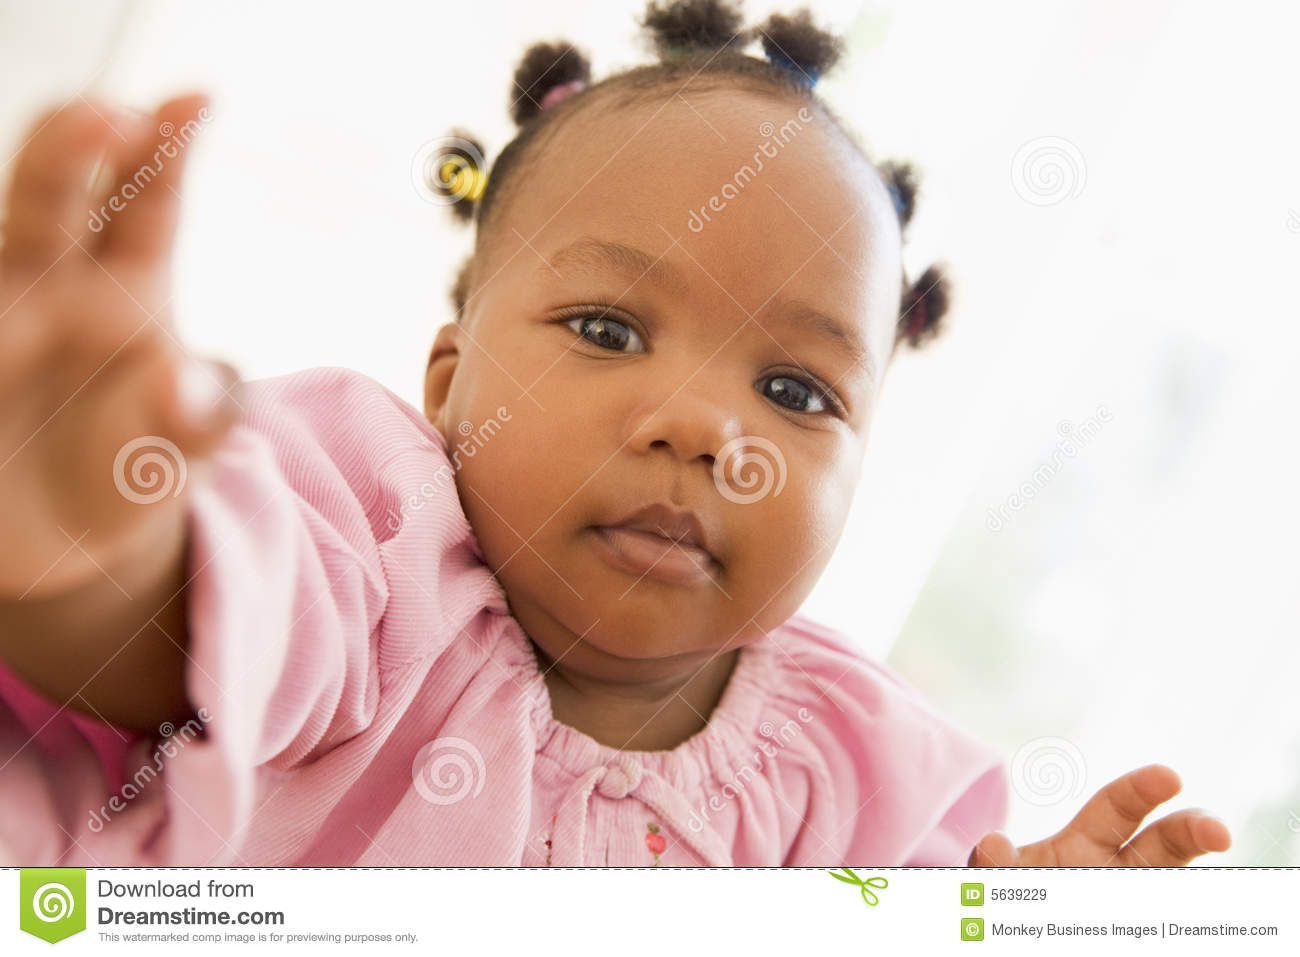 Baby indoors reaching hand out royalty free stock images image